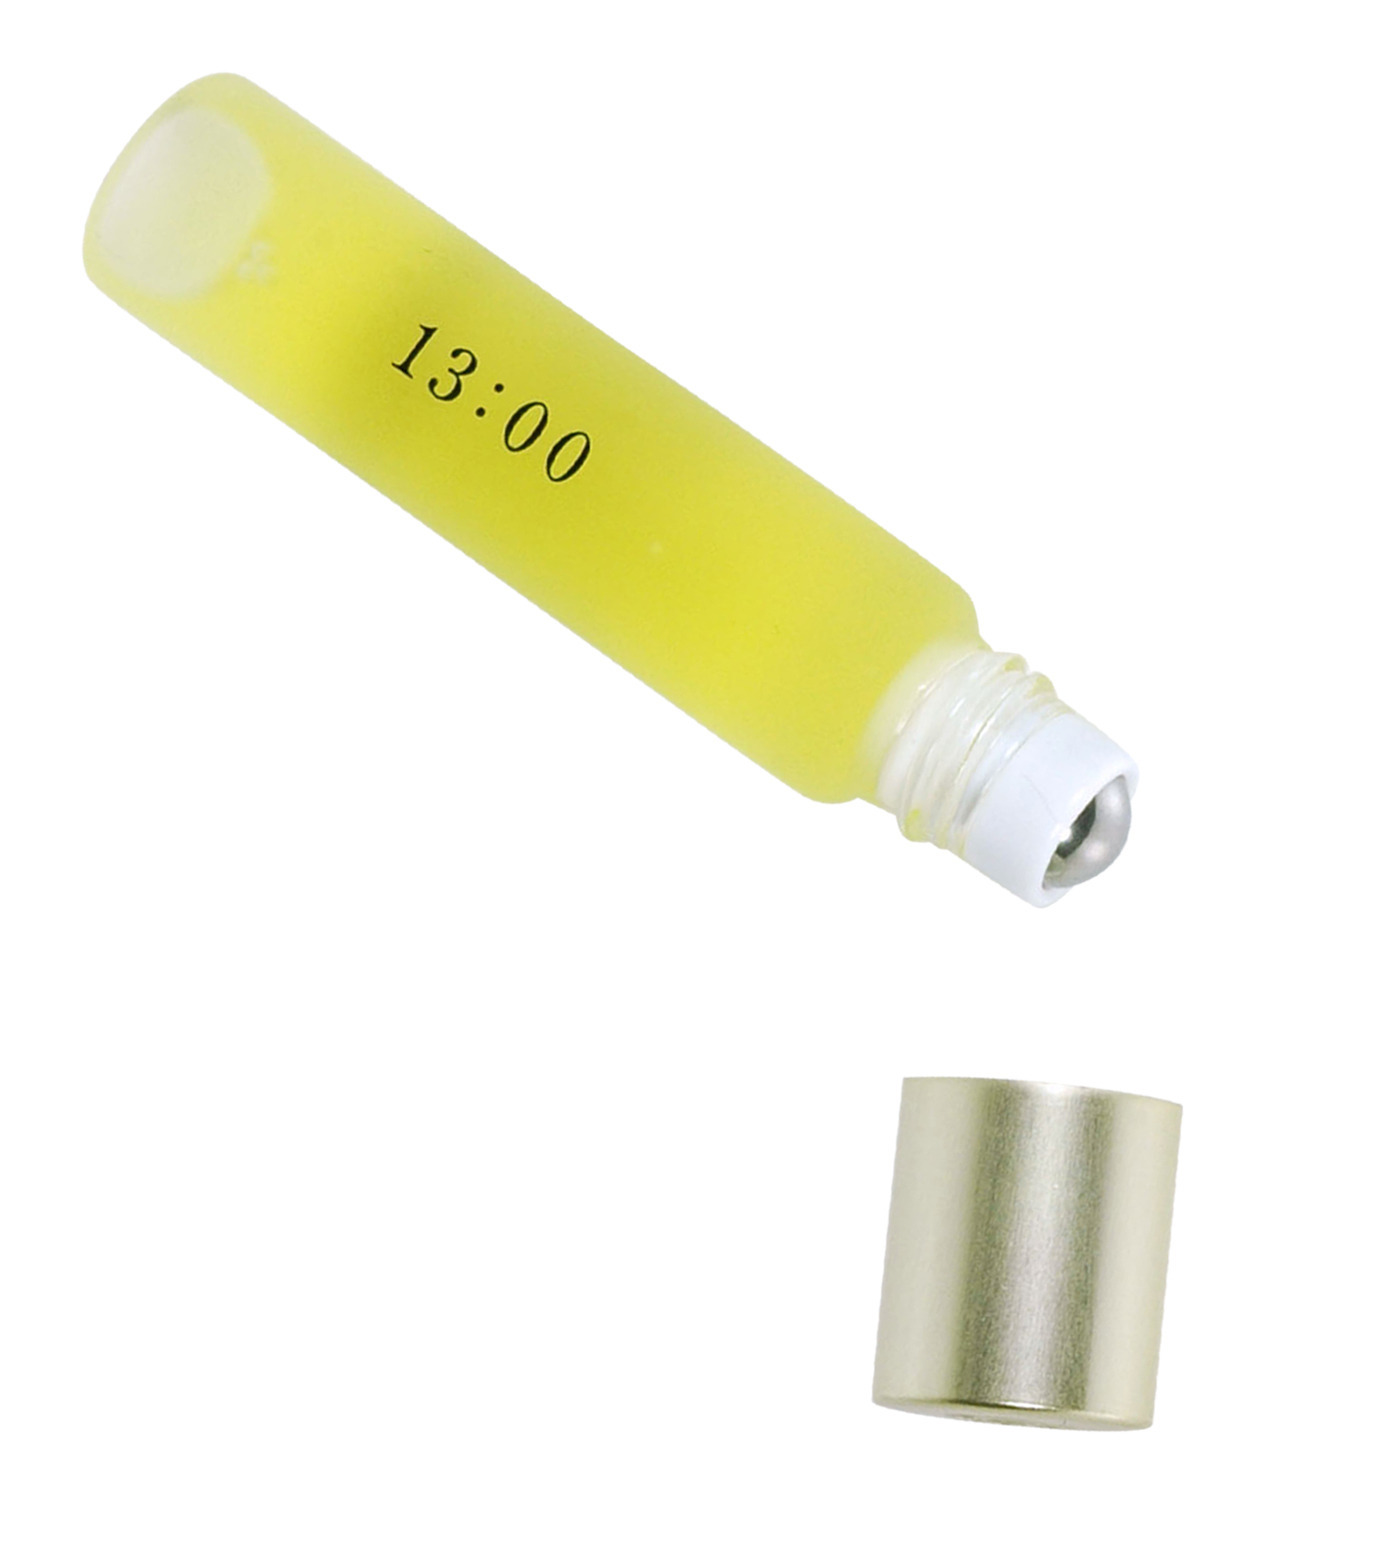 uka(ウカ)のnail oil 13:00-YELLOW(BATH-BODY/BATH / BODY)-uka1300 拡大詳細画像2